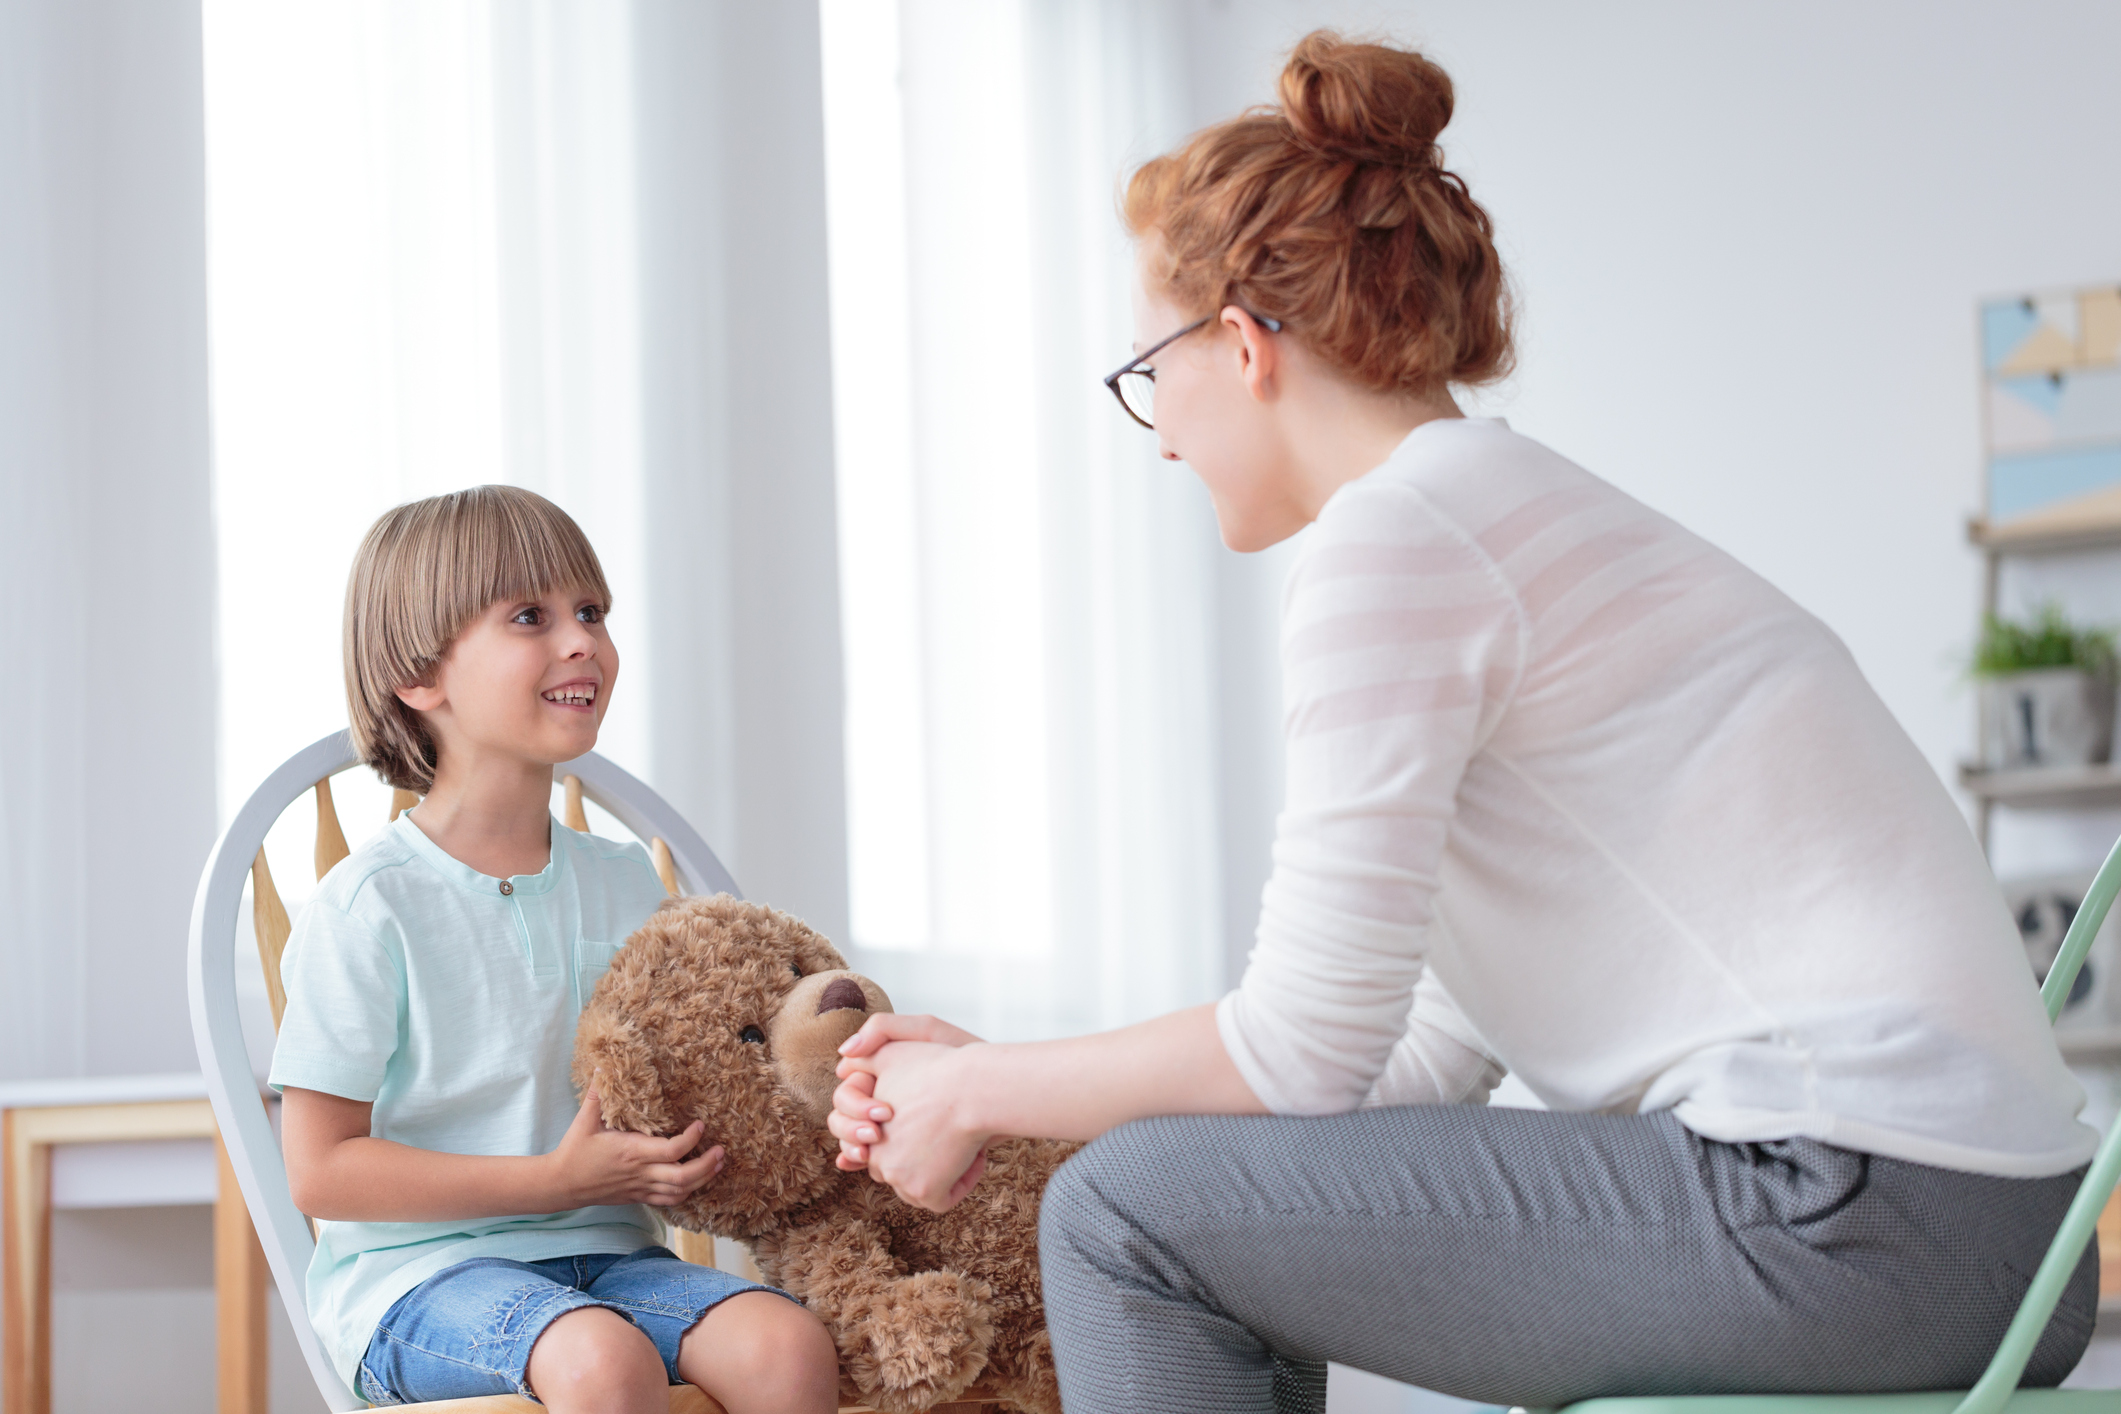 East Bay Child Therapists - Our passion is empowering children to master their emotional lives in a warm, safe, and dynamic environment. Our work with children and adolescents in drama psychotherapy and child play therapy, as well as talk therapy, is designed to facilitate healing and emotional processing.